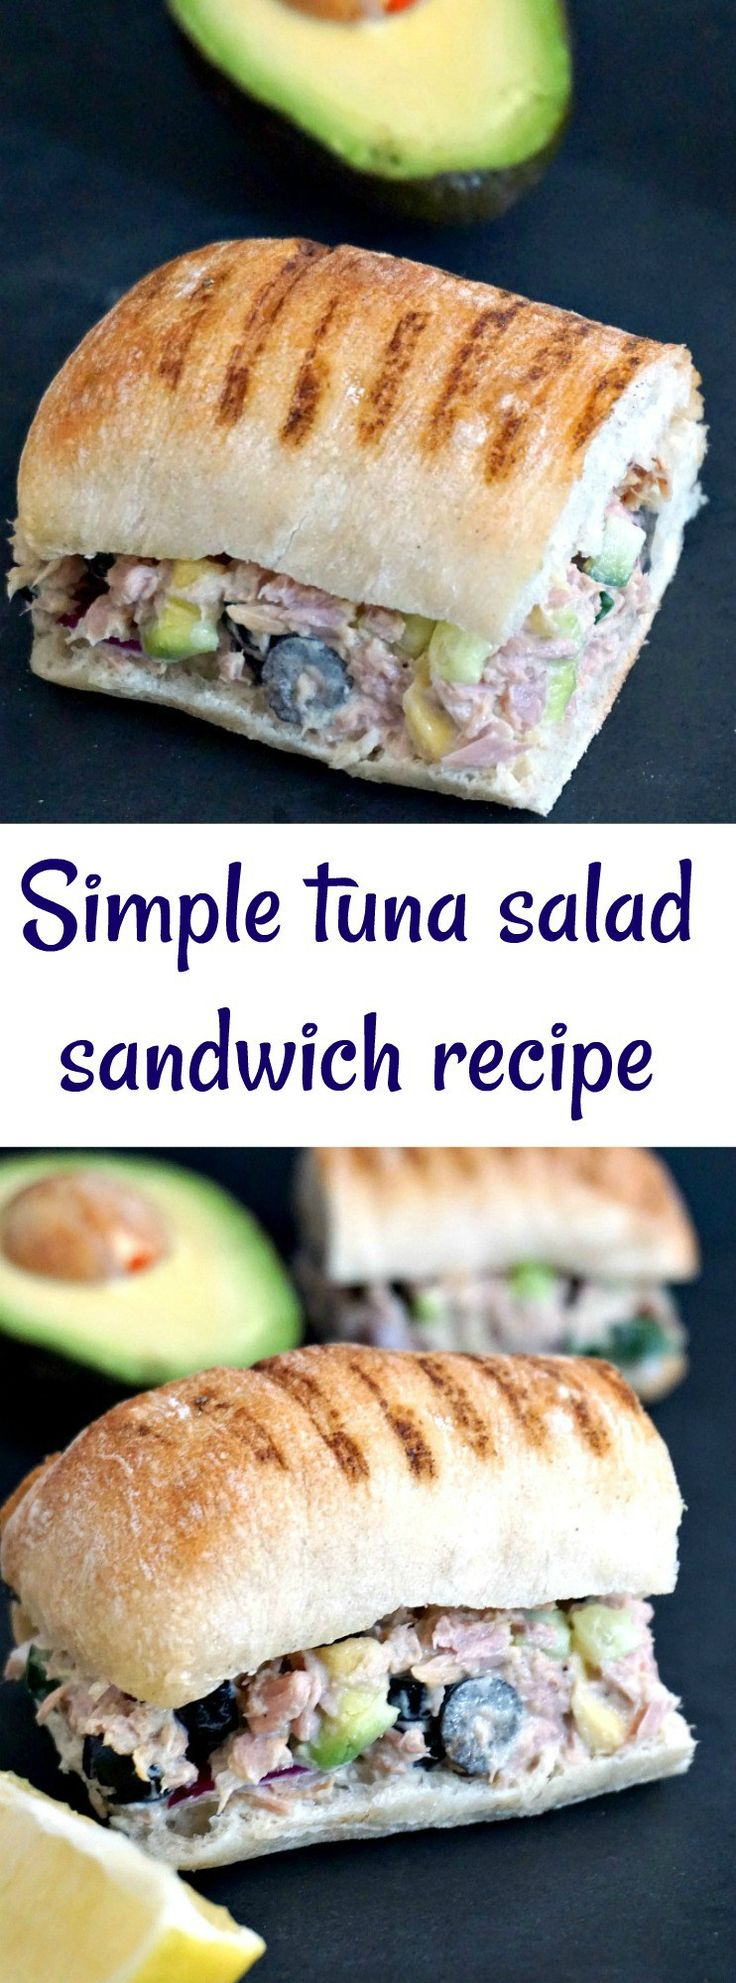 Simple tuna salad sandwich recipe with avocados, black olives and cucumber, healthy, filling and so delicious. A quick and easy, and so healthy lunch or dinner.